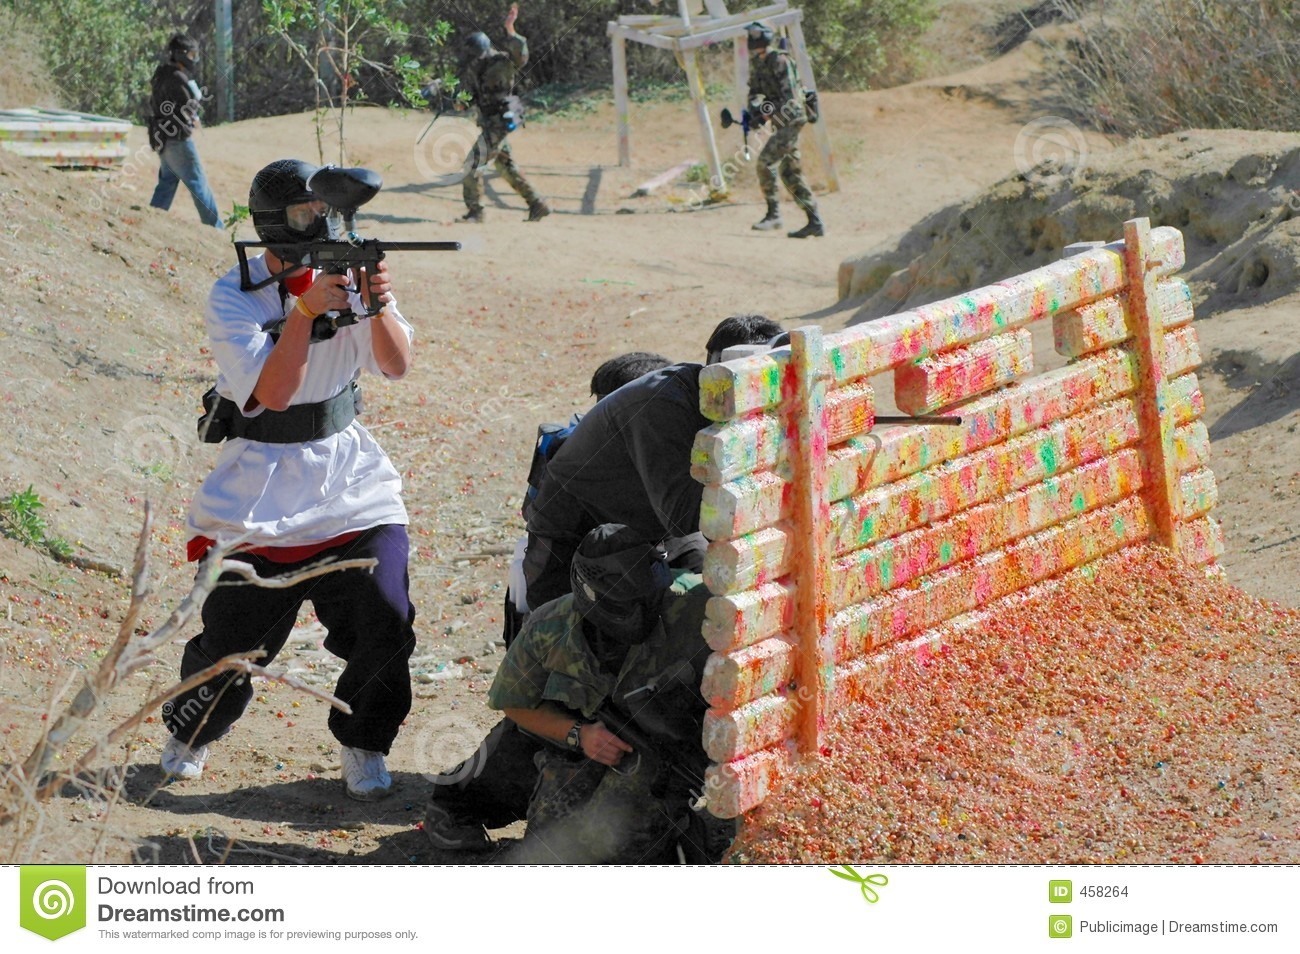 Download Paintball Players Behind Bunker Stock Photo - Image of bunker, fighter: 458264